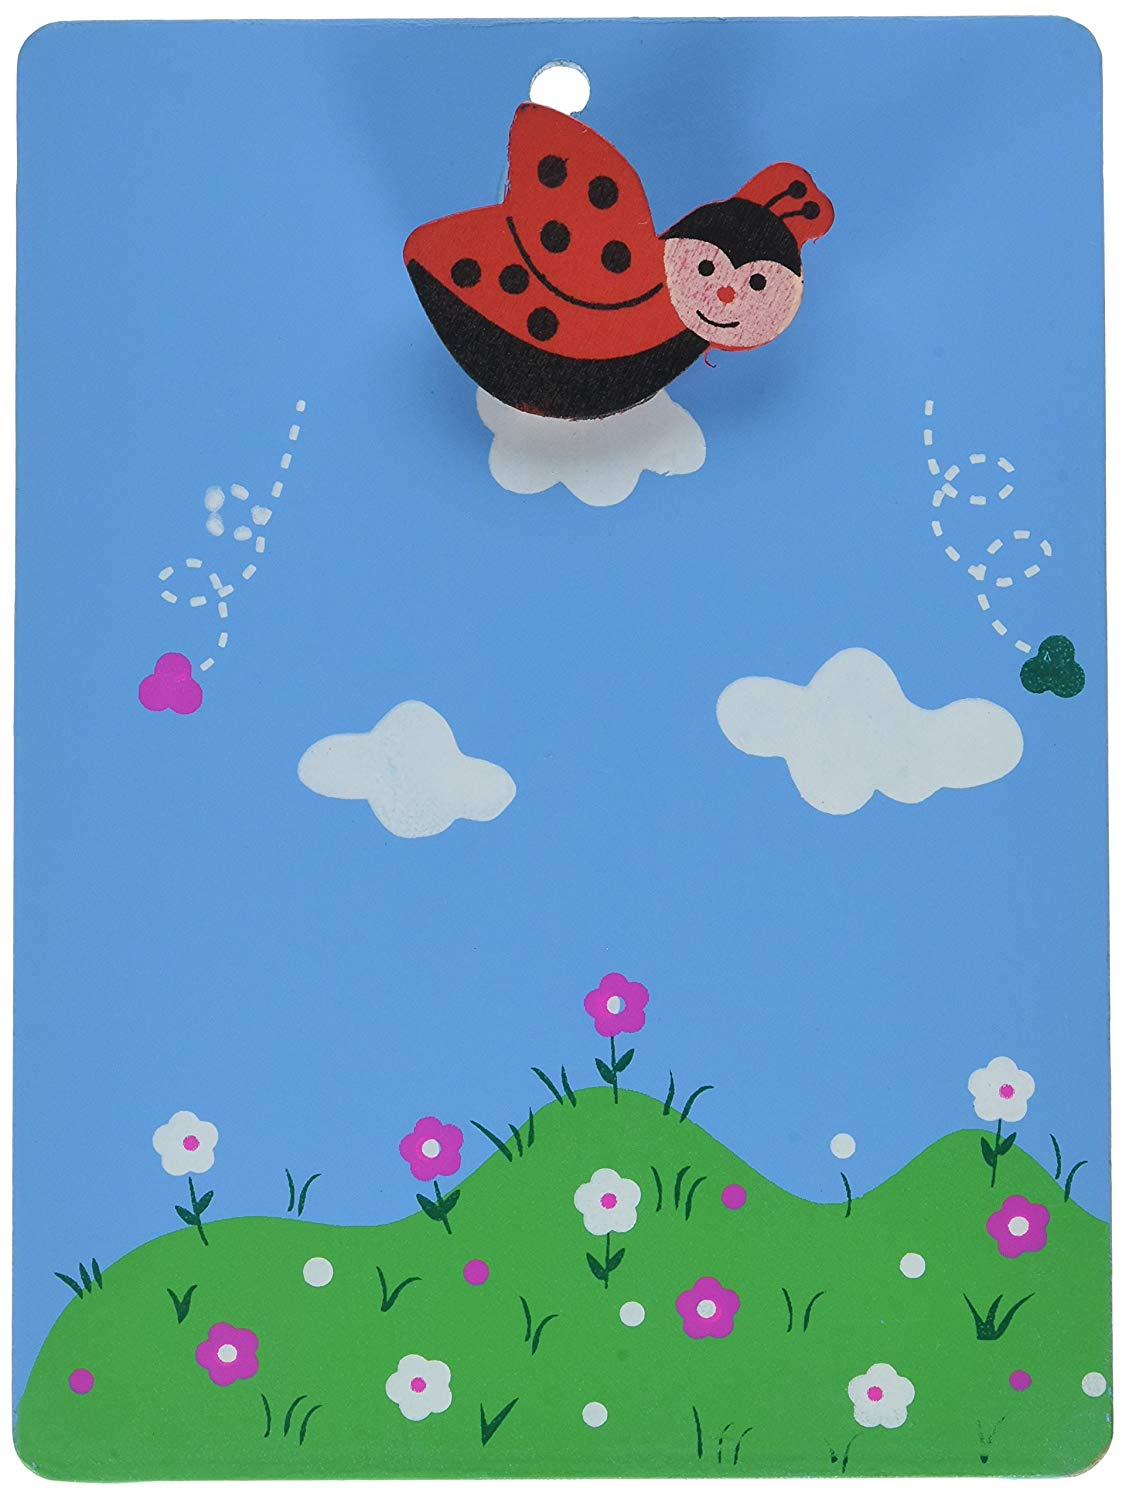 Amazon.com : Uxcell Wooden Bee Shaped Grassland Pattern.